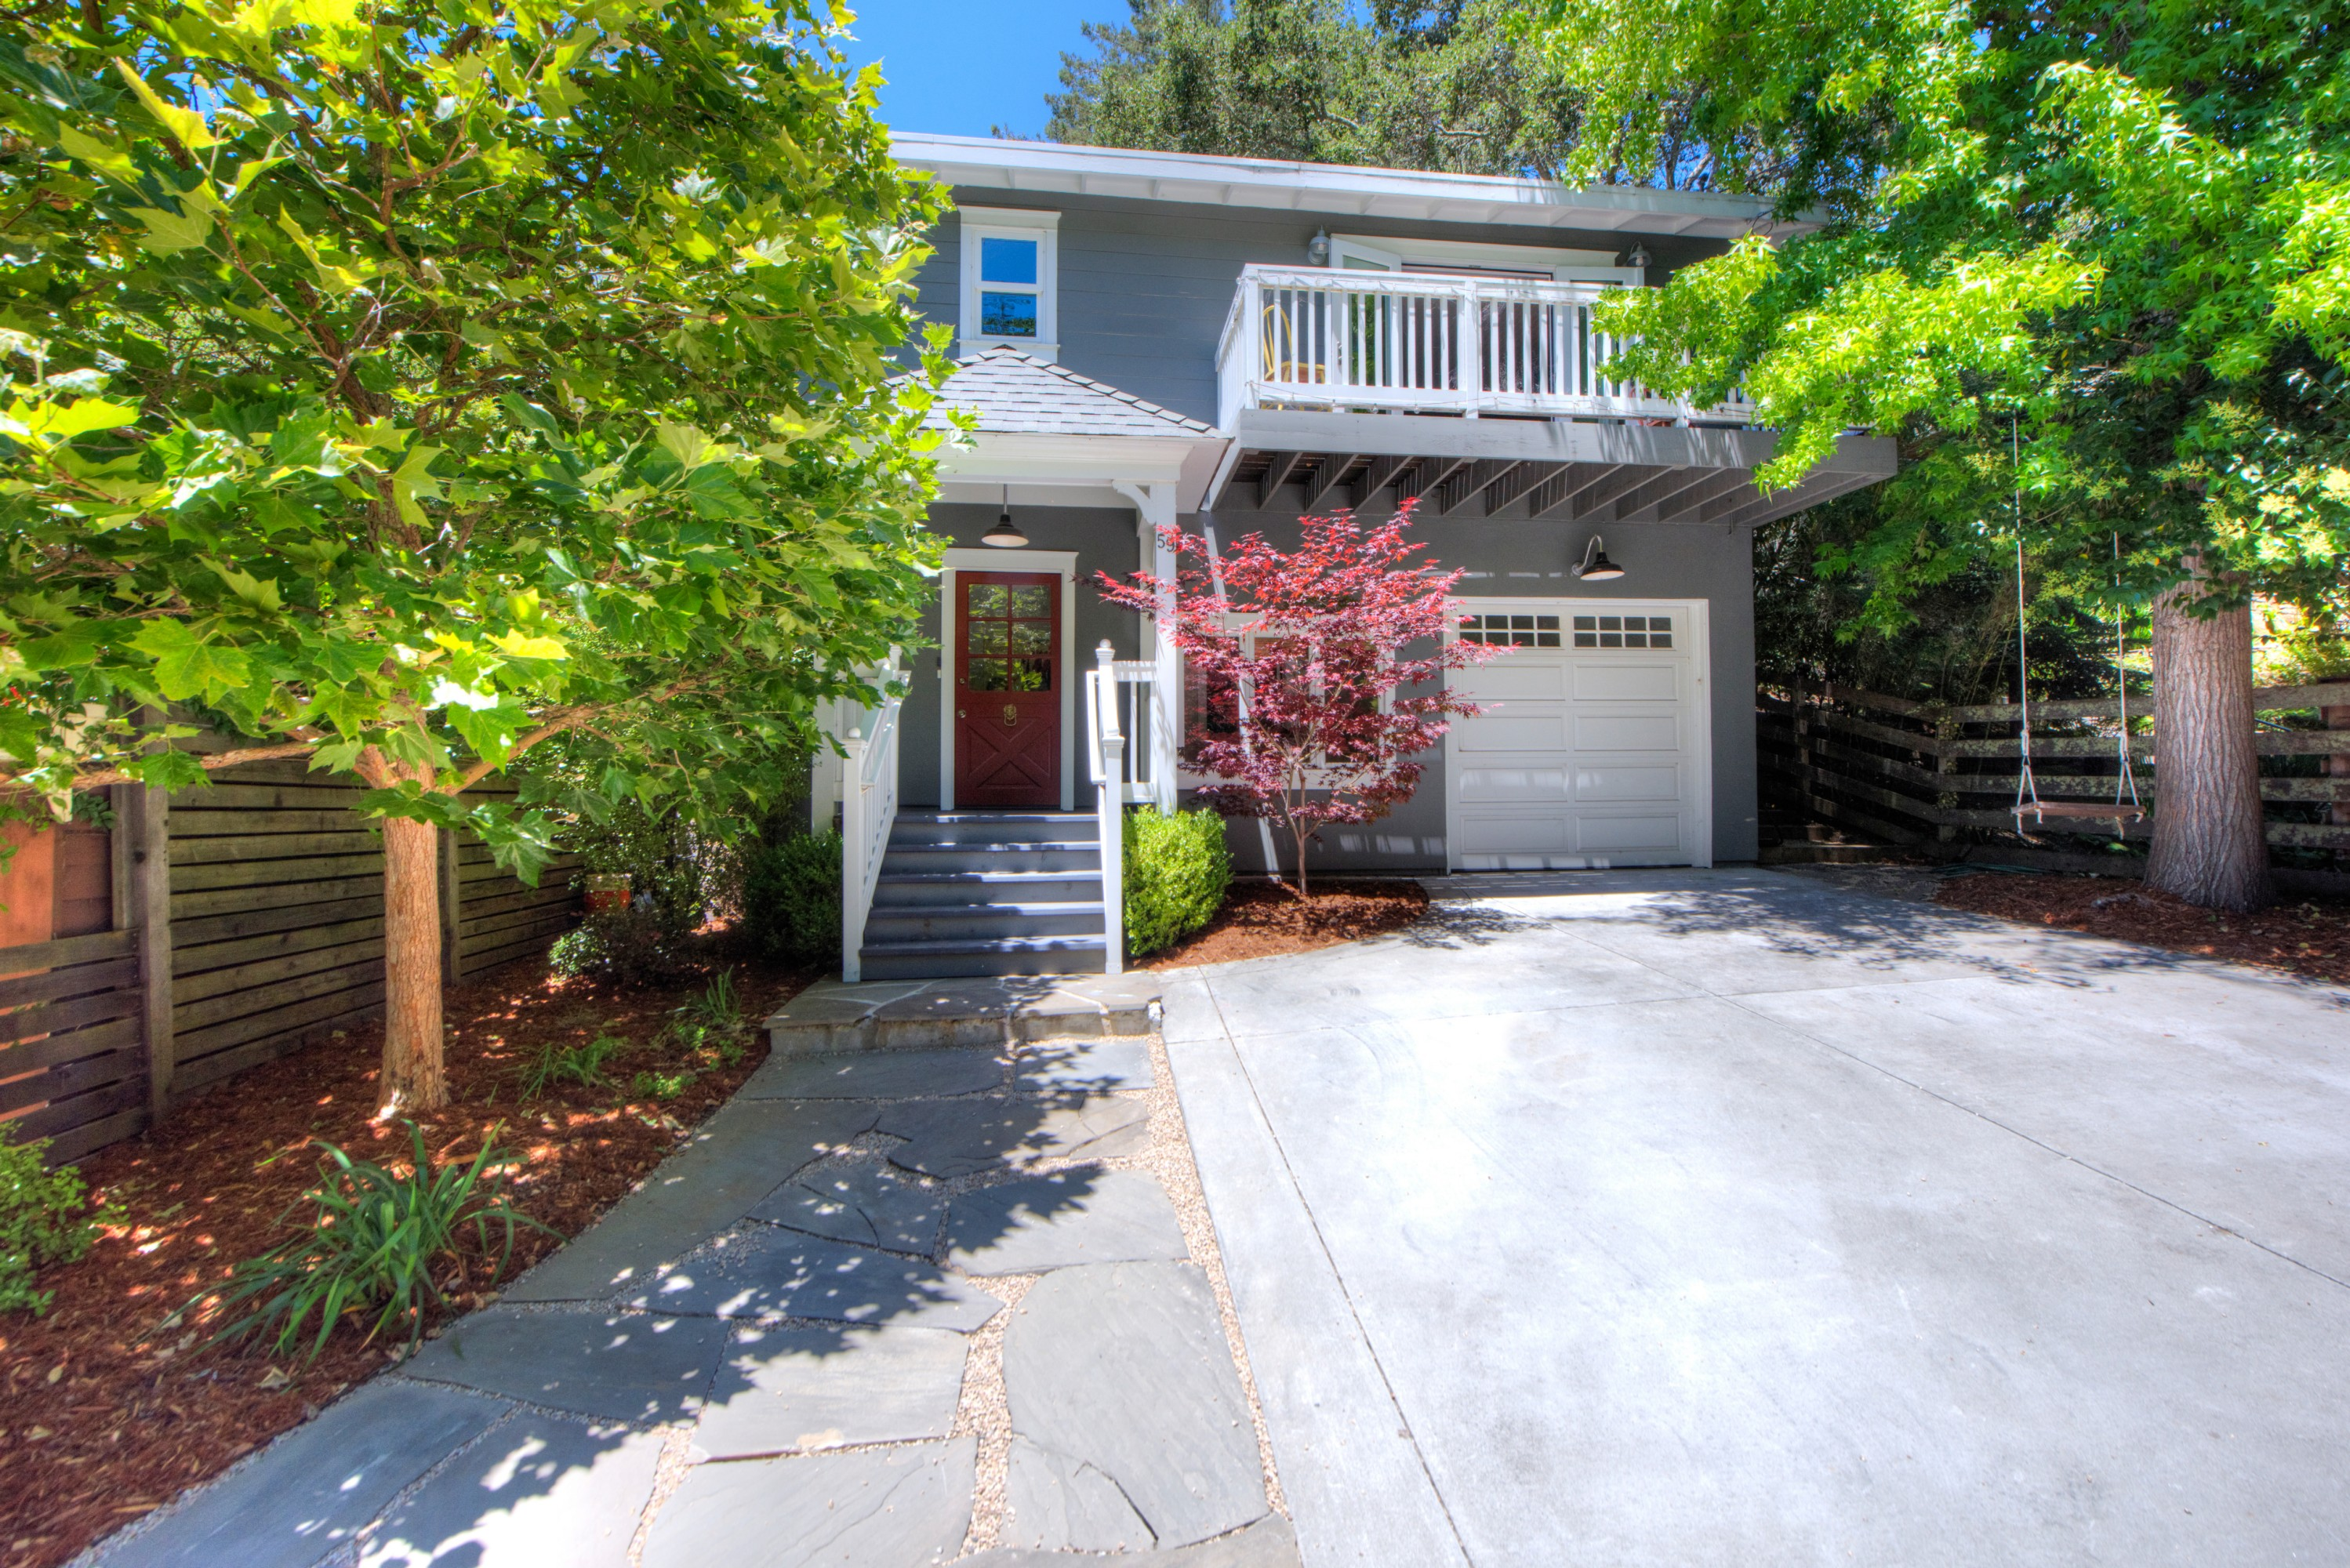 Single Family Home for Sale at Sunny and Cheerful in Downtown Mill Valley 59 Eldridge Avenue Mill Valley, California, 94941 United States